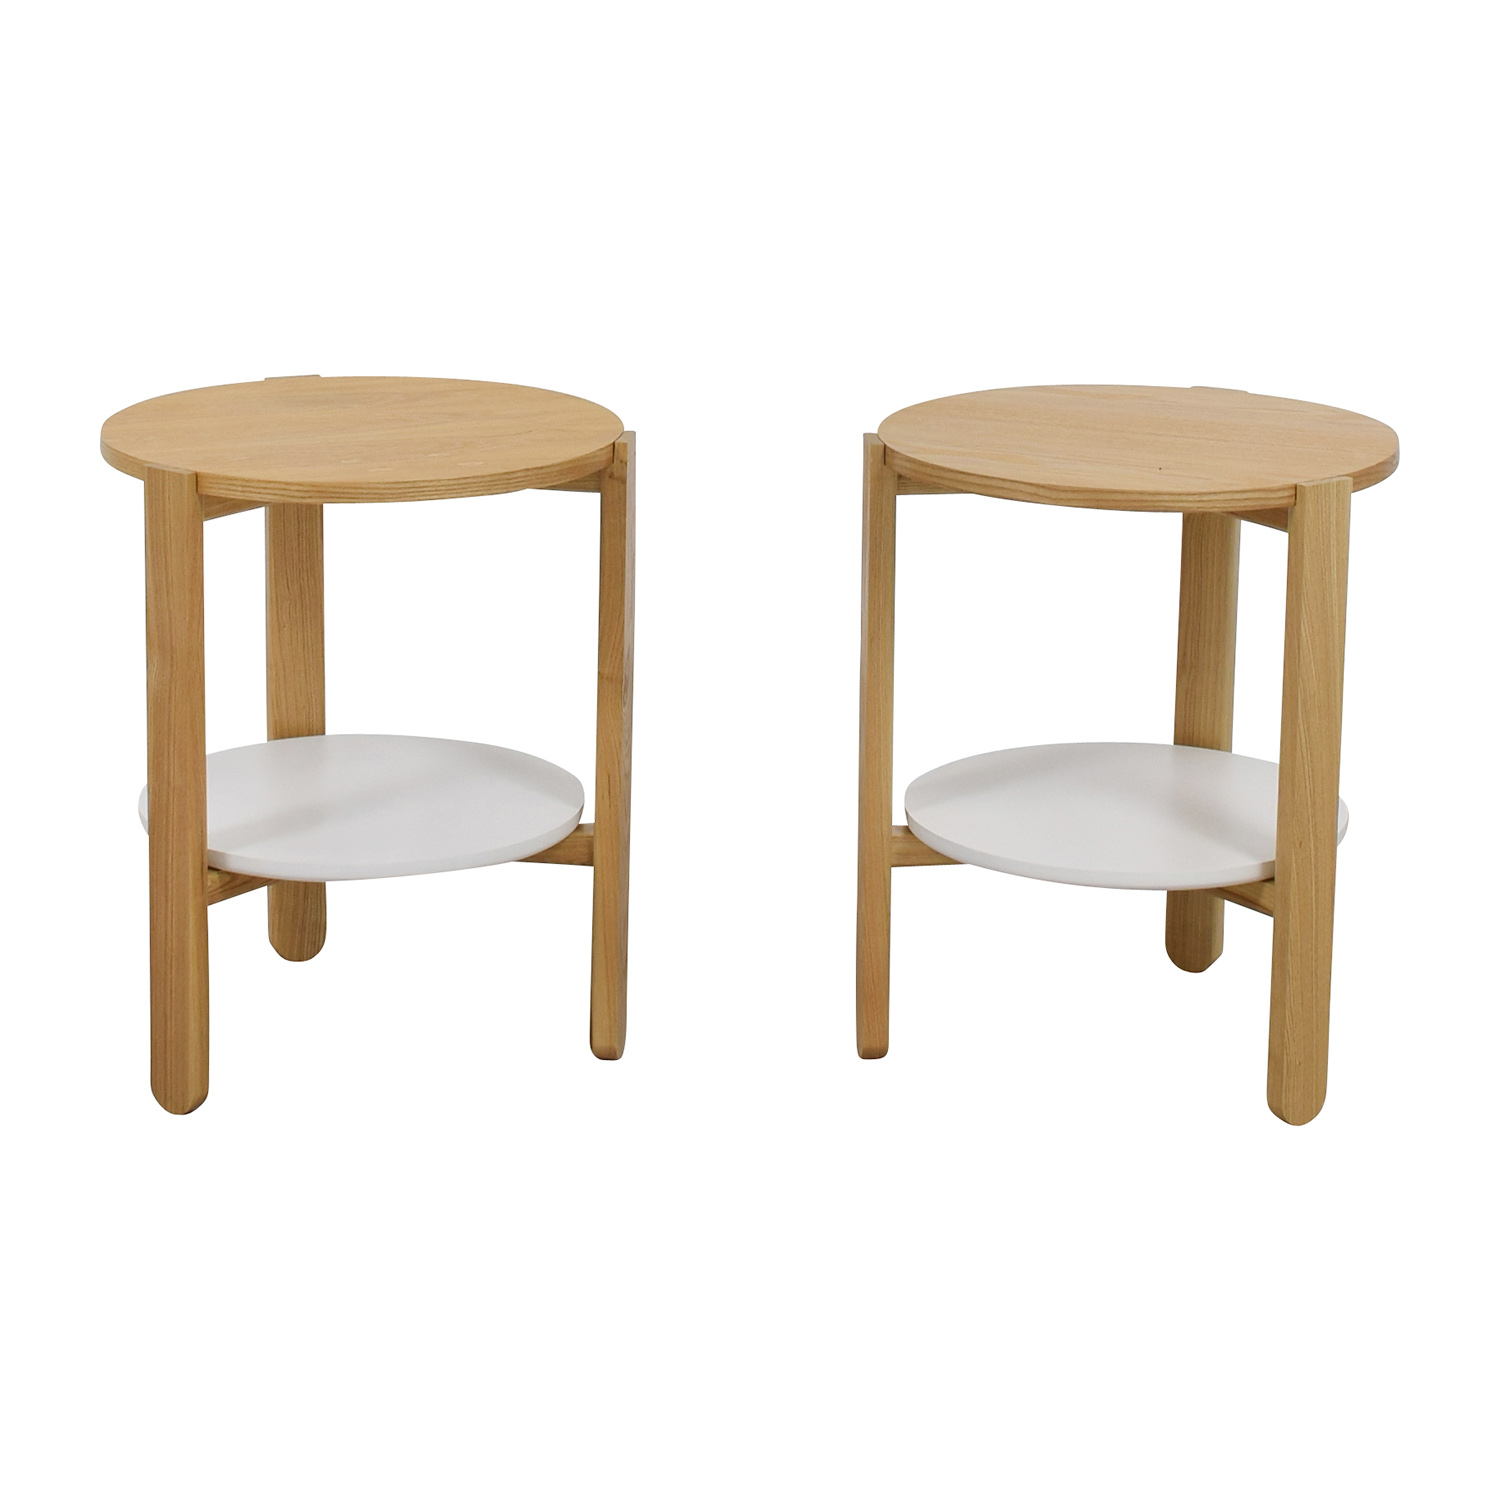 buy Umbra Two-toned Round Wood Side Tables Umbra End Tables